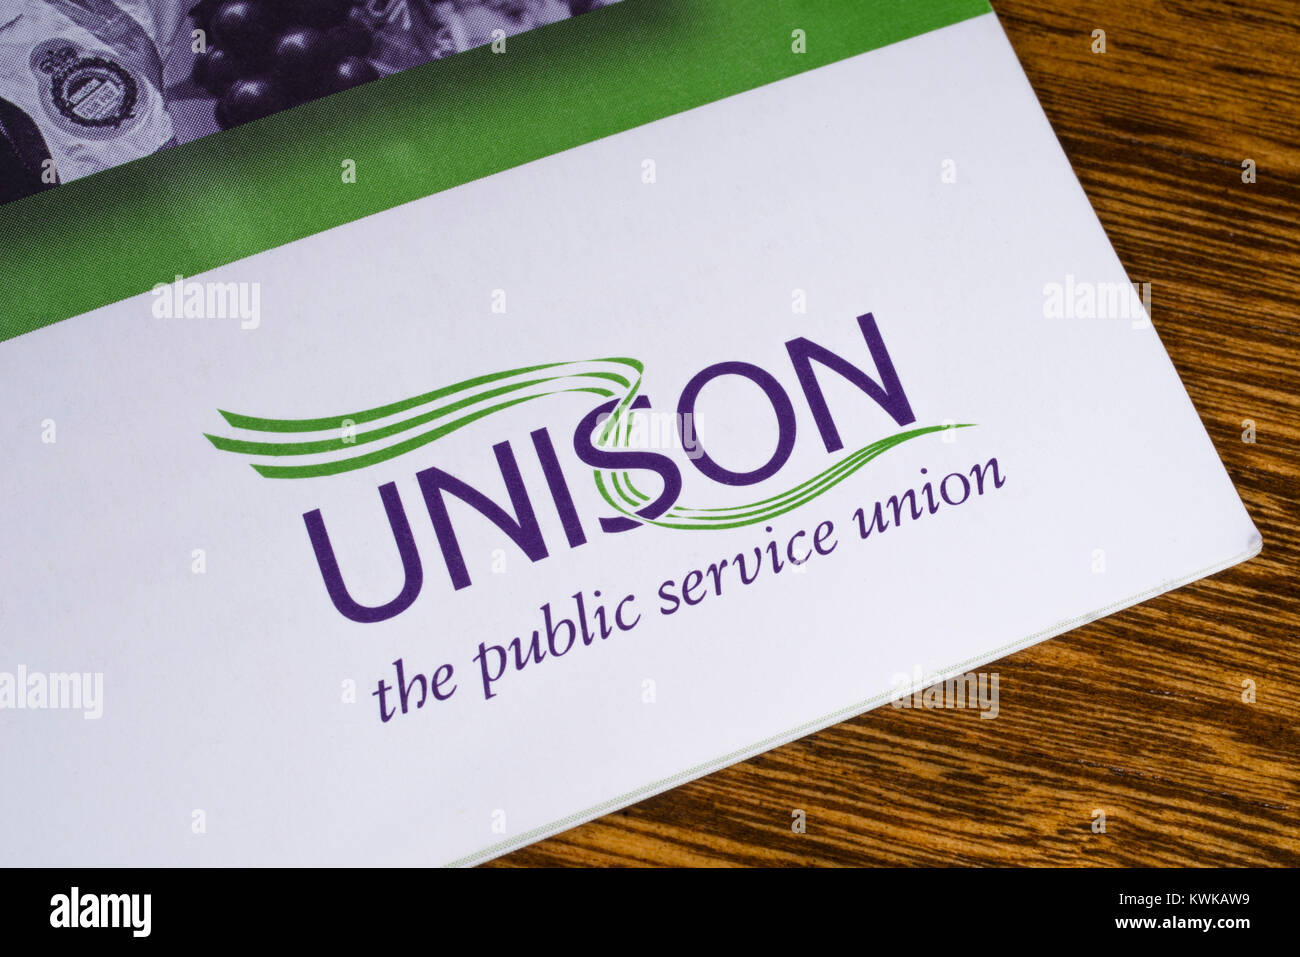 LONDON, UK - DECEMBER 18TH 2017: Close-up of the UNISON logo on a leaflet, on 18th December 2017.  UNISON is the - Stock Image